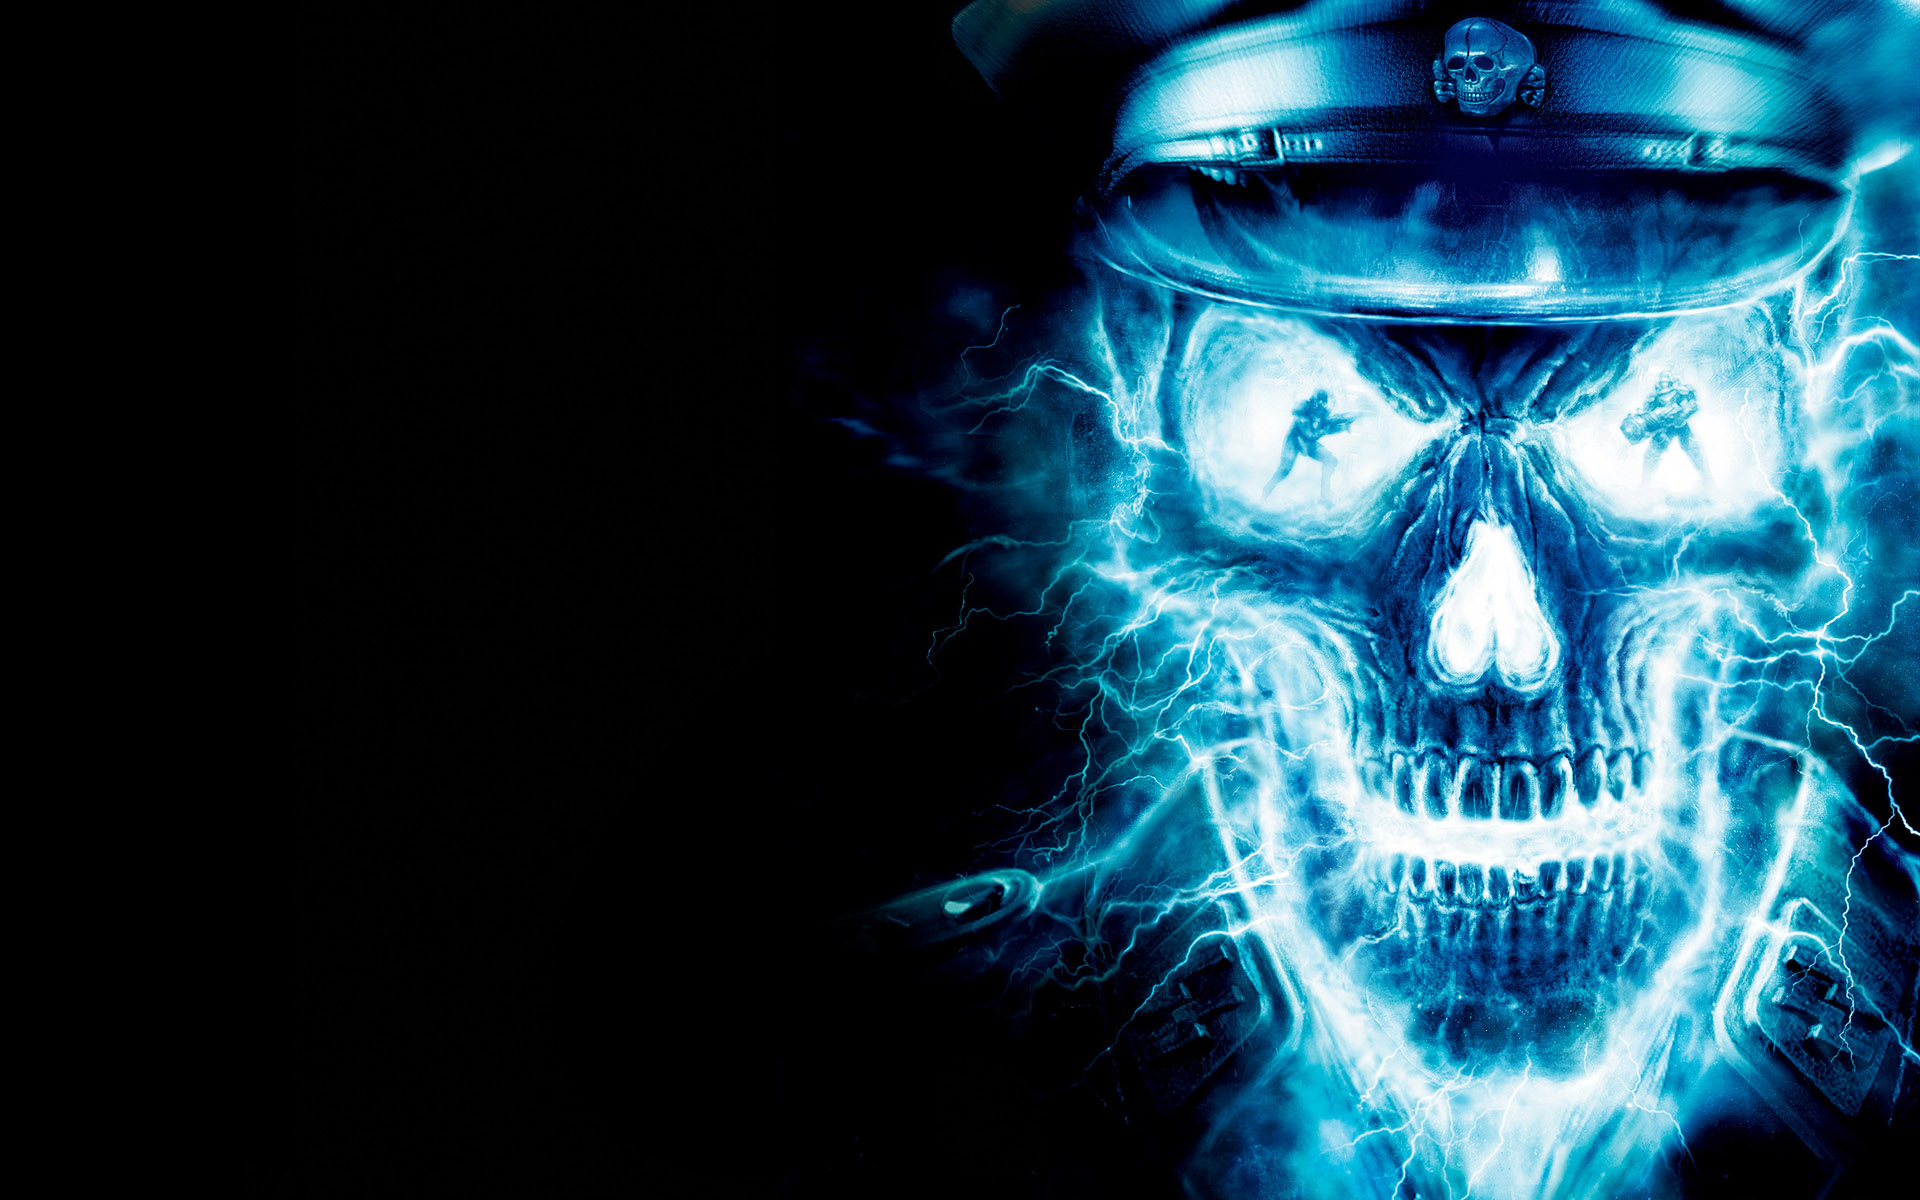 the ghost rider images blue ghost rider hd wallpaper and background